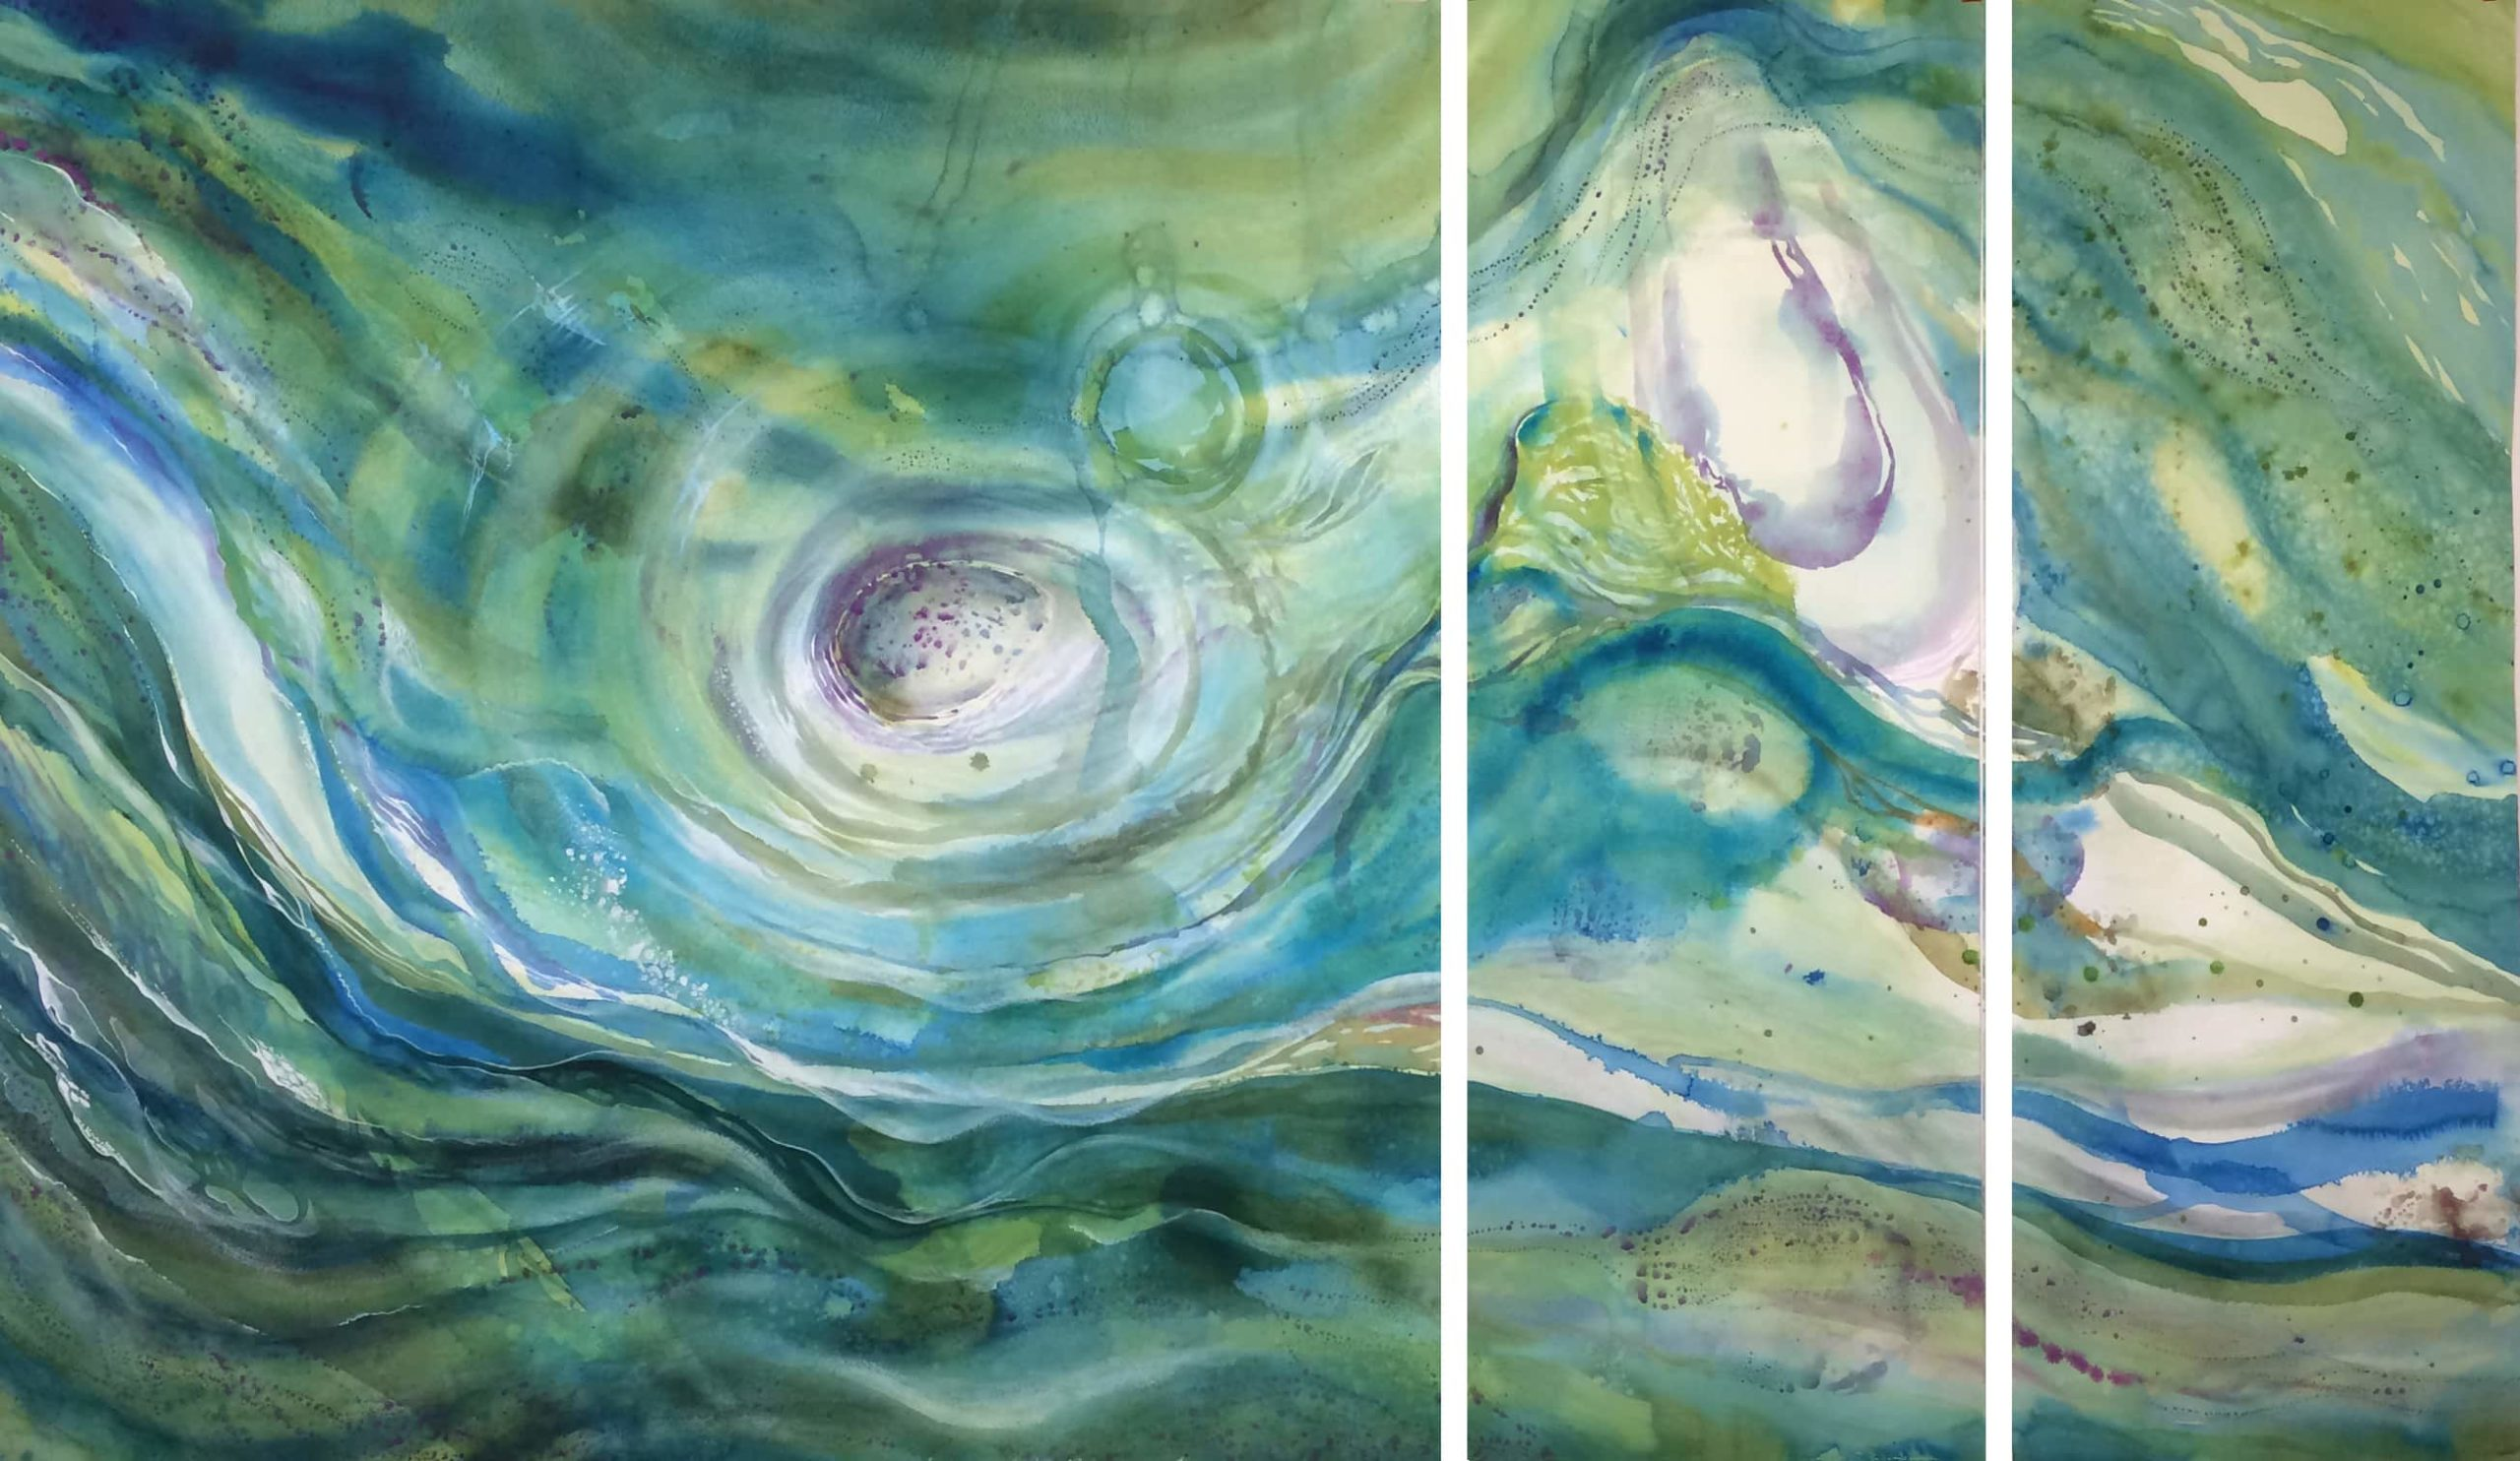 Large 3-panel painting in progress.